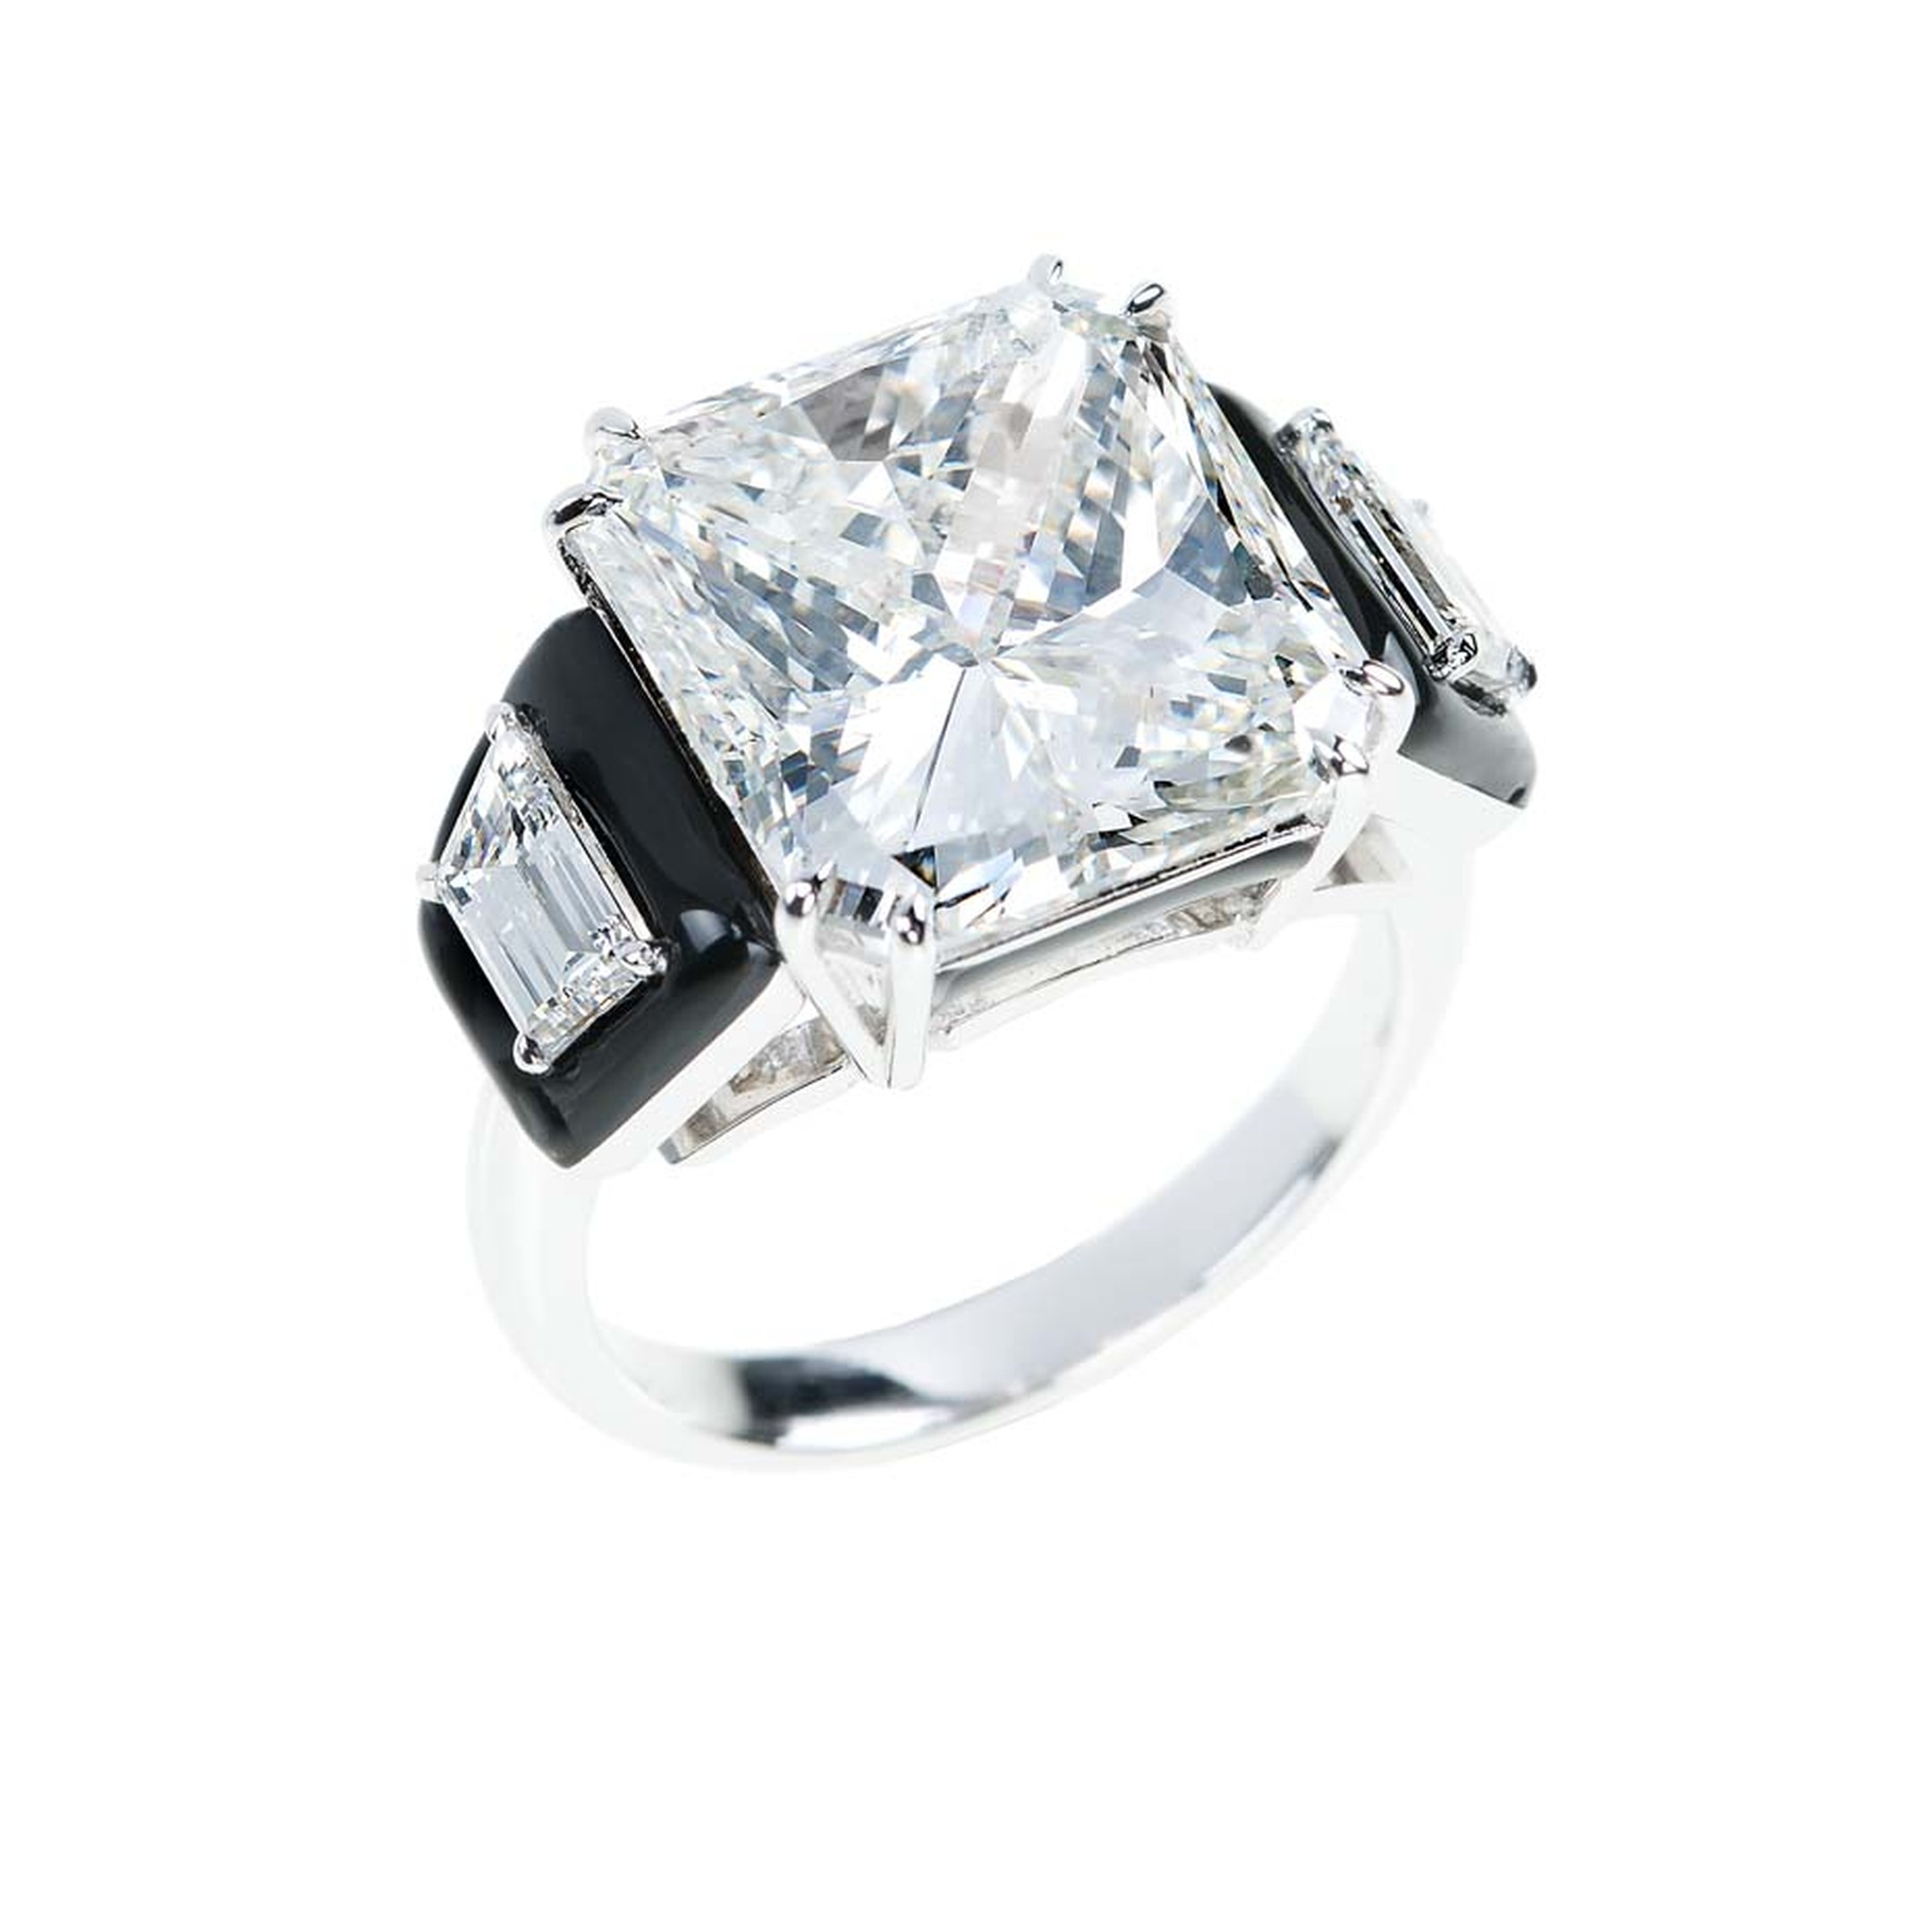 "Nikos Koulis princess-cut diamond engagement ring, with diamonds inset into black enamel, is one of the unique engagement rings from the talented Greek designer's new ""Oui"" bridal collection."